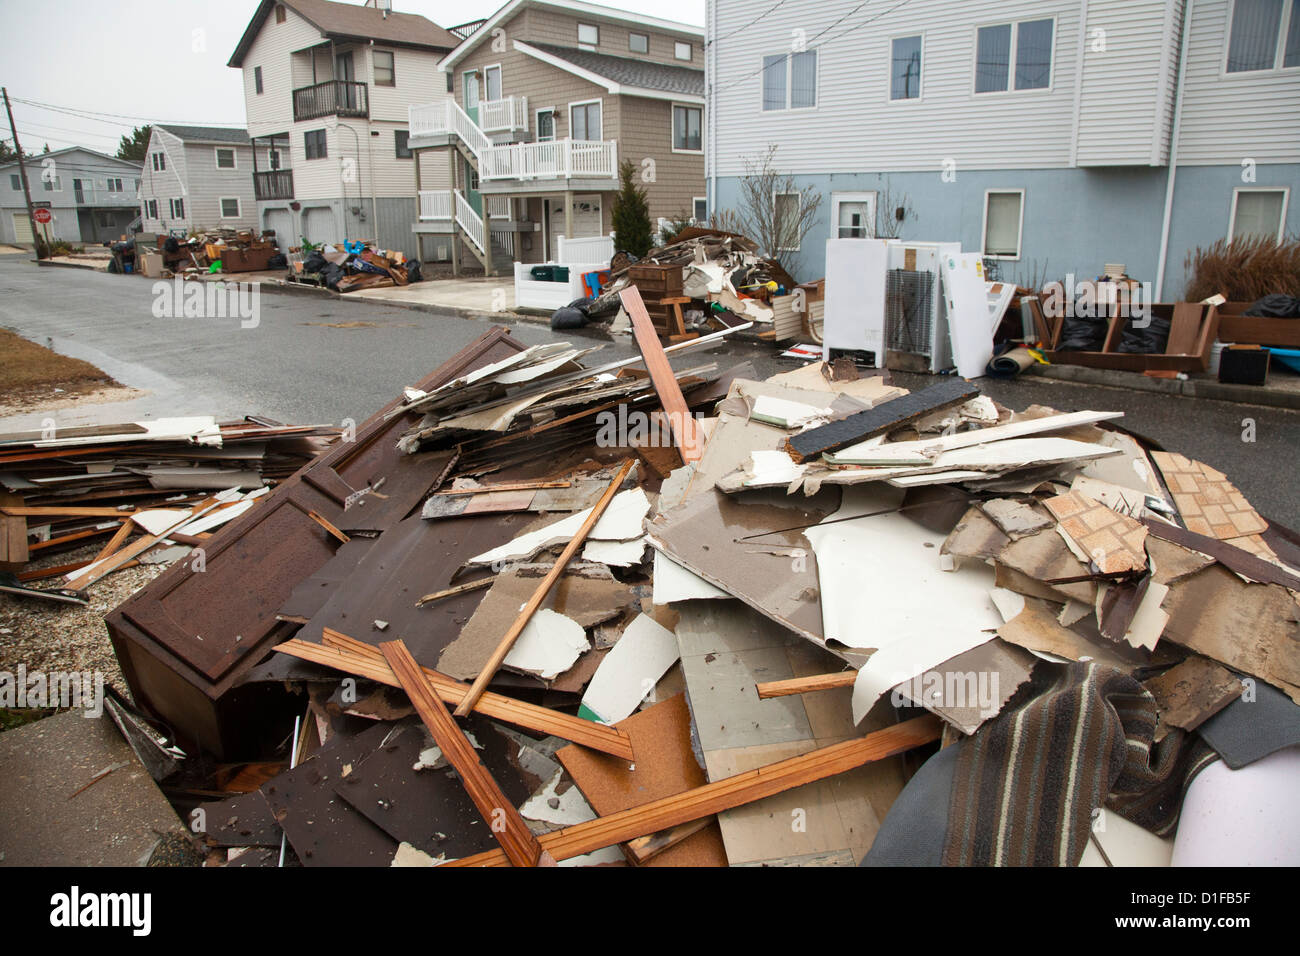 Debris from Hurricane Sandy lines the streets on Long Beach Island, a barrier island off the New Jersey coast. - Stock Image